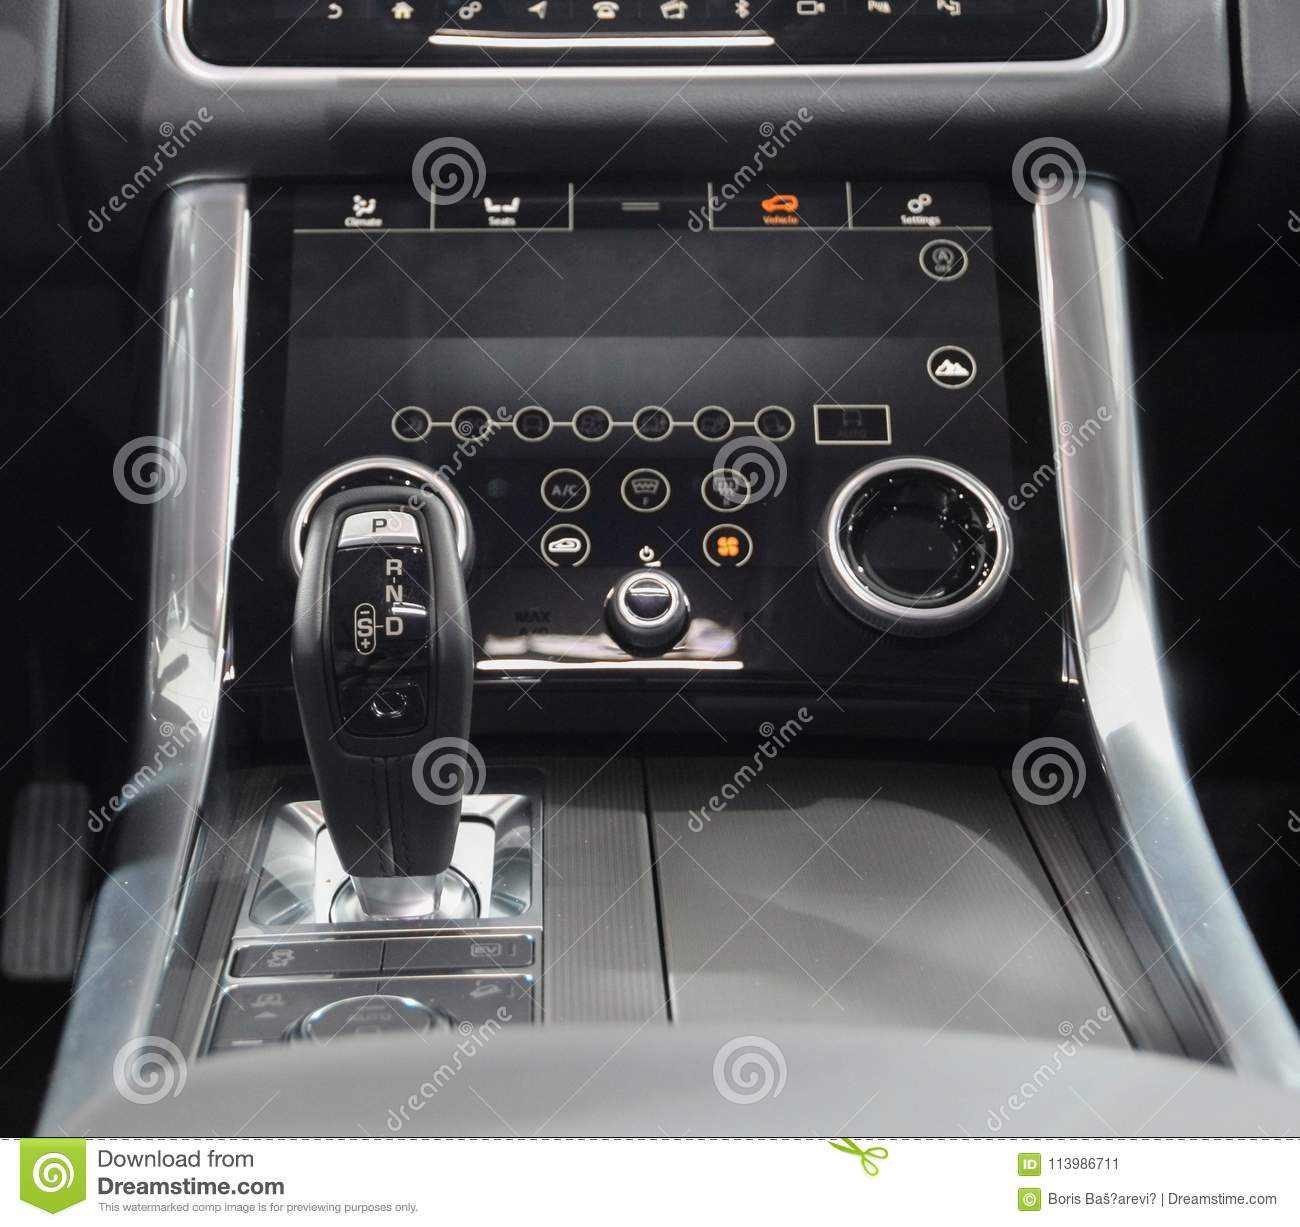 Switzerland; Geneva; March 8, 2018; Range Rover automatic gearbox lever; the 88th International Motor Show in Geneva from 8th to